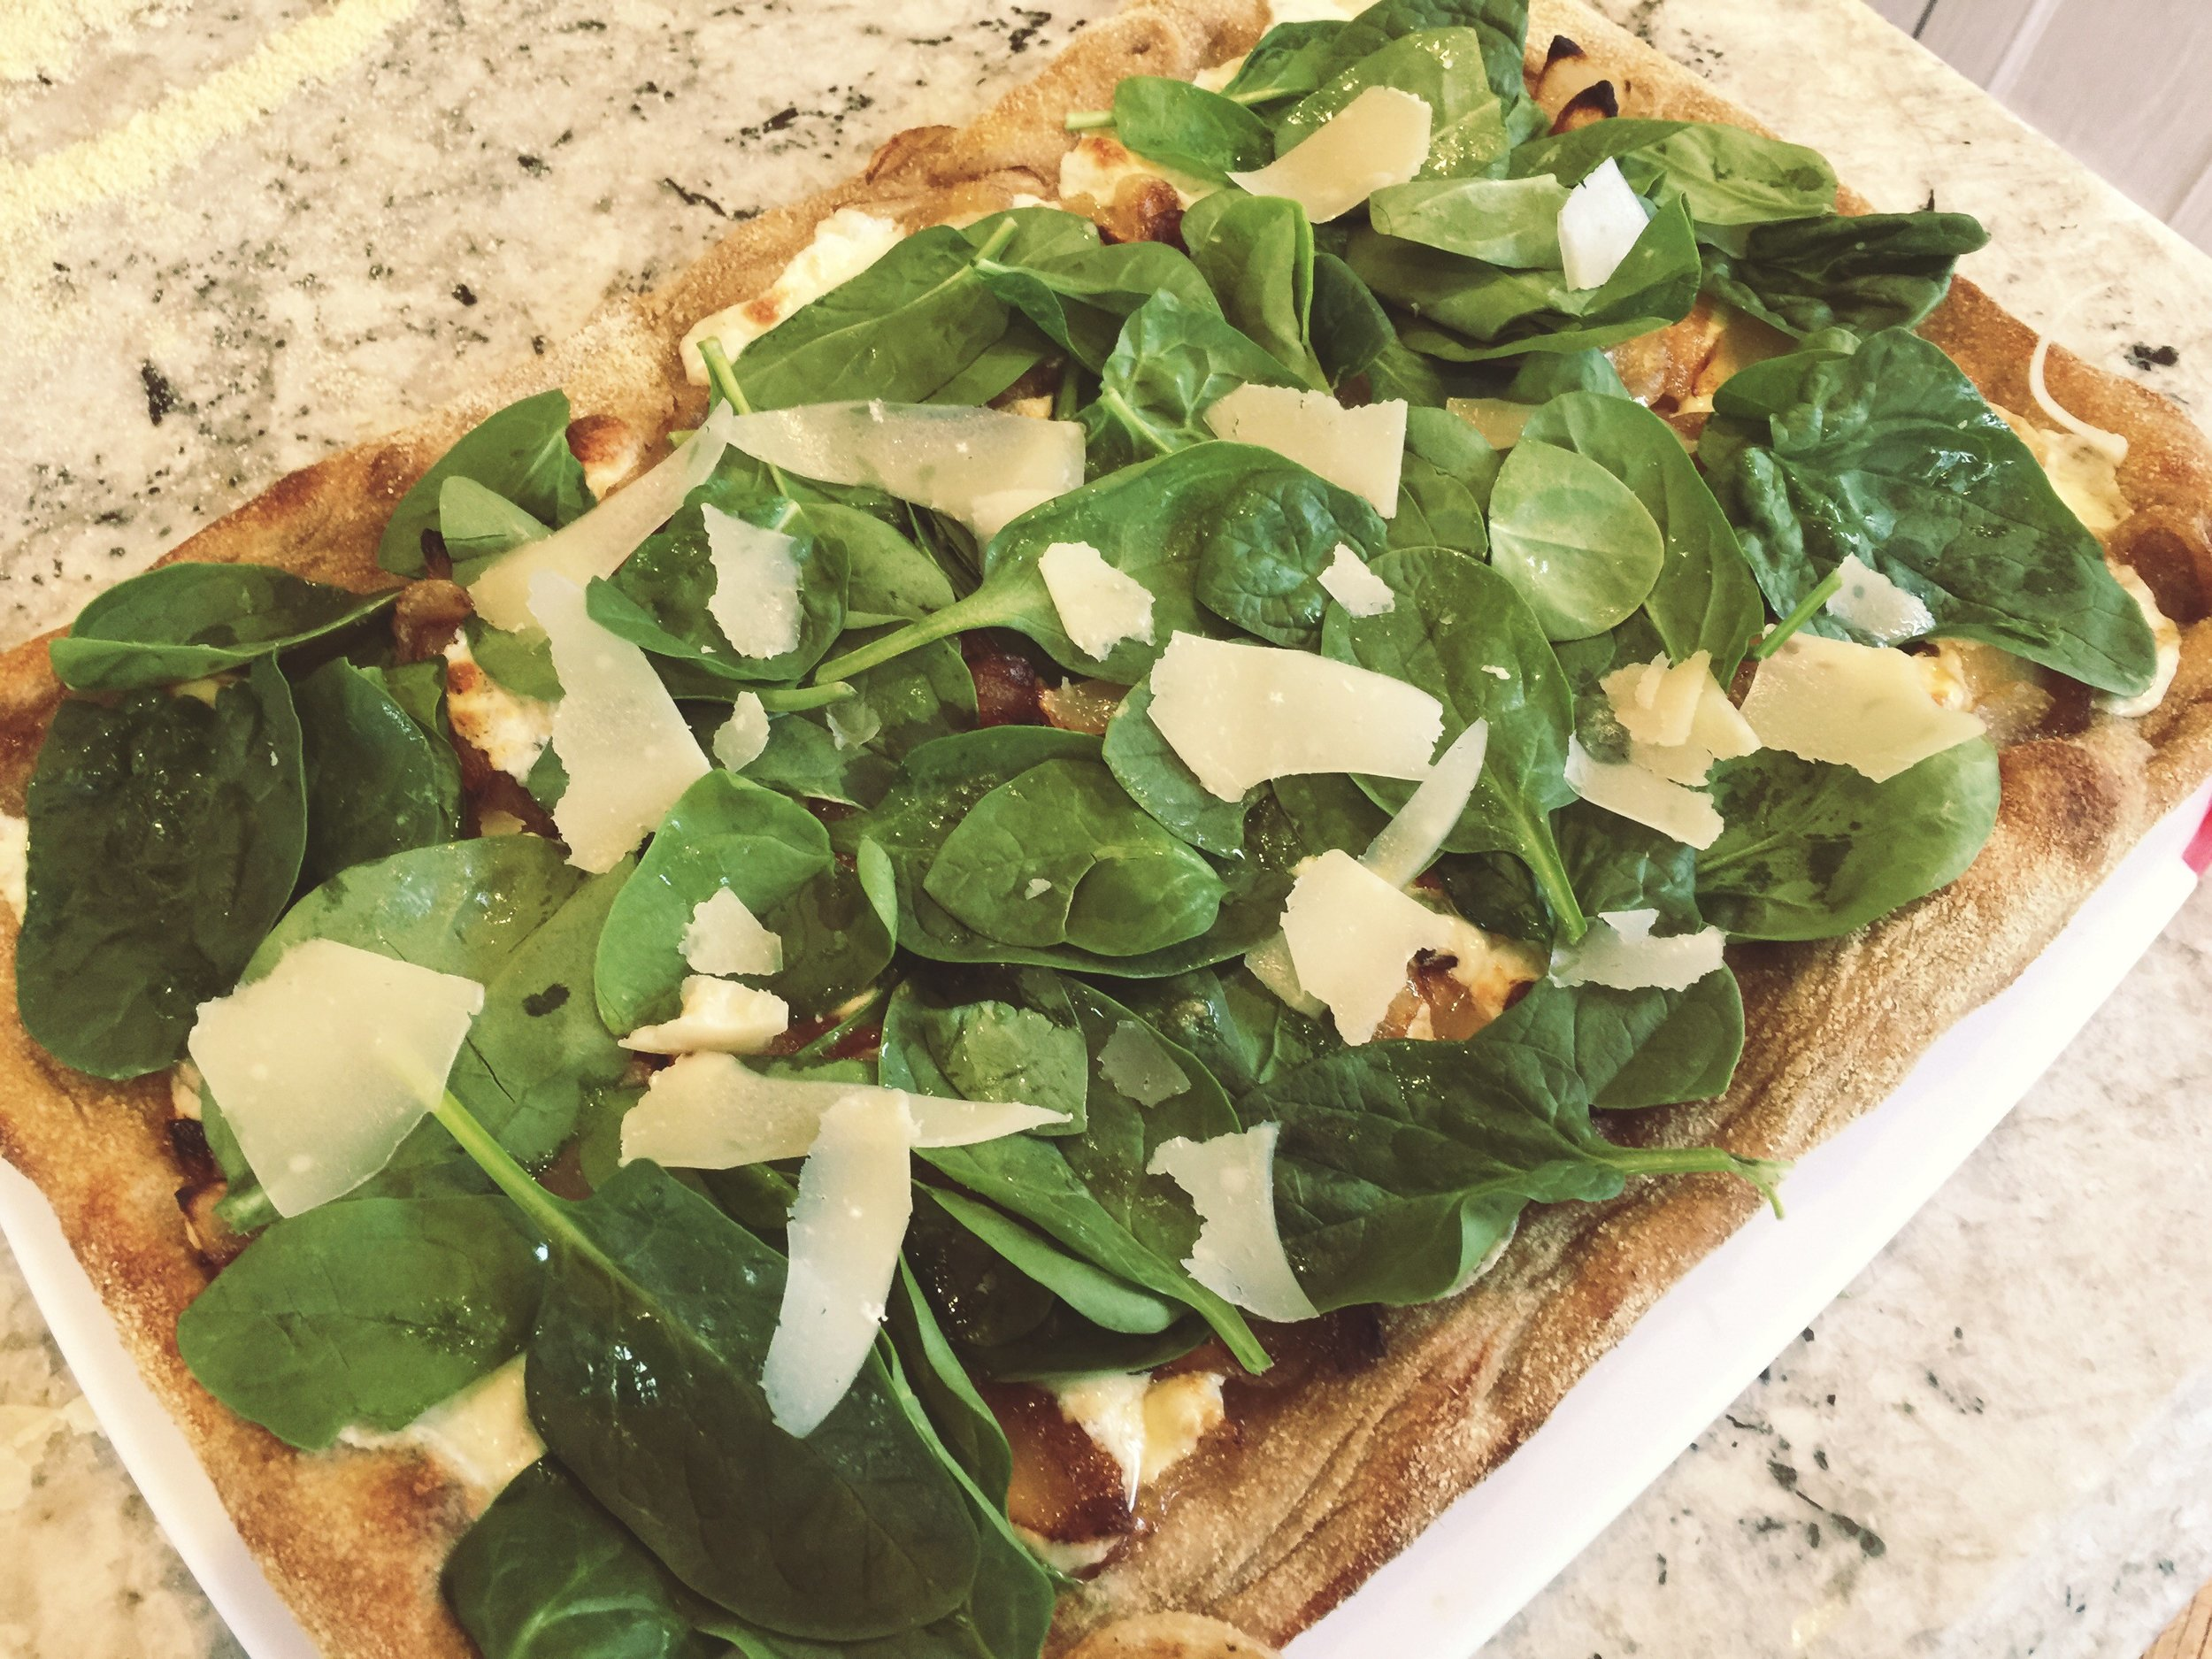 Caramelized Onion, Fresh Spinach and Shaved Parmesan